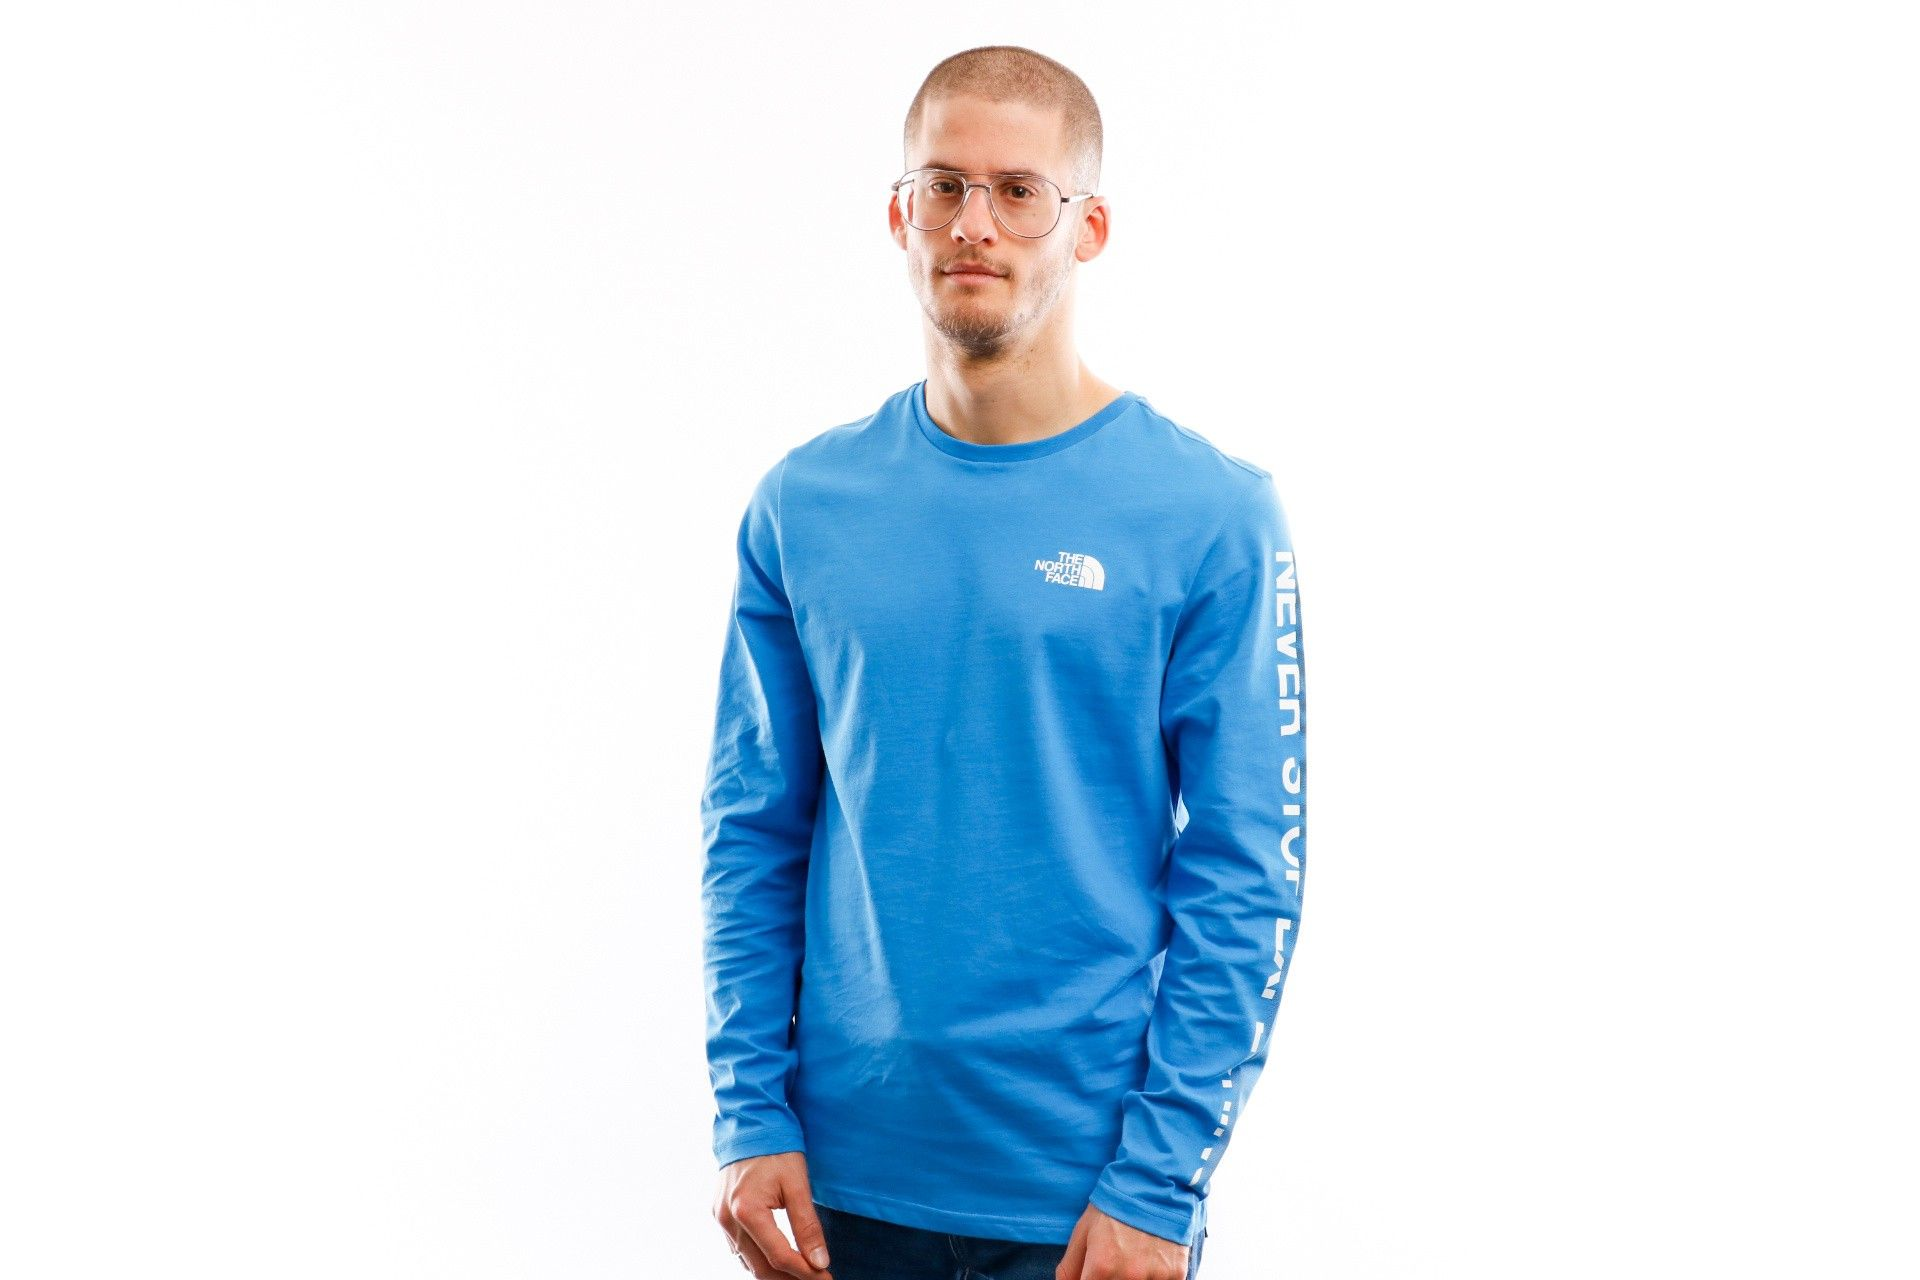 Afbeelding van The North Face Longsleeve Men's L/S Graphic Flow 1 Clear Lake Blue/Tnf White NF0A4927ME